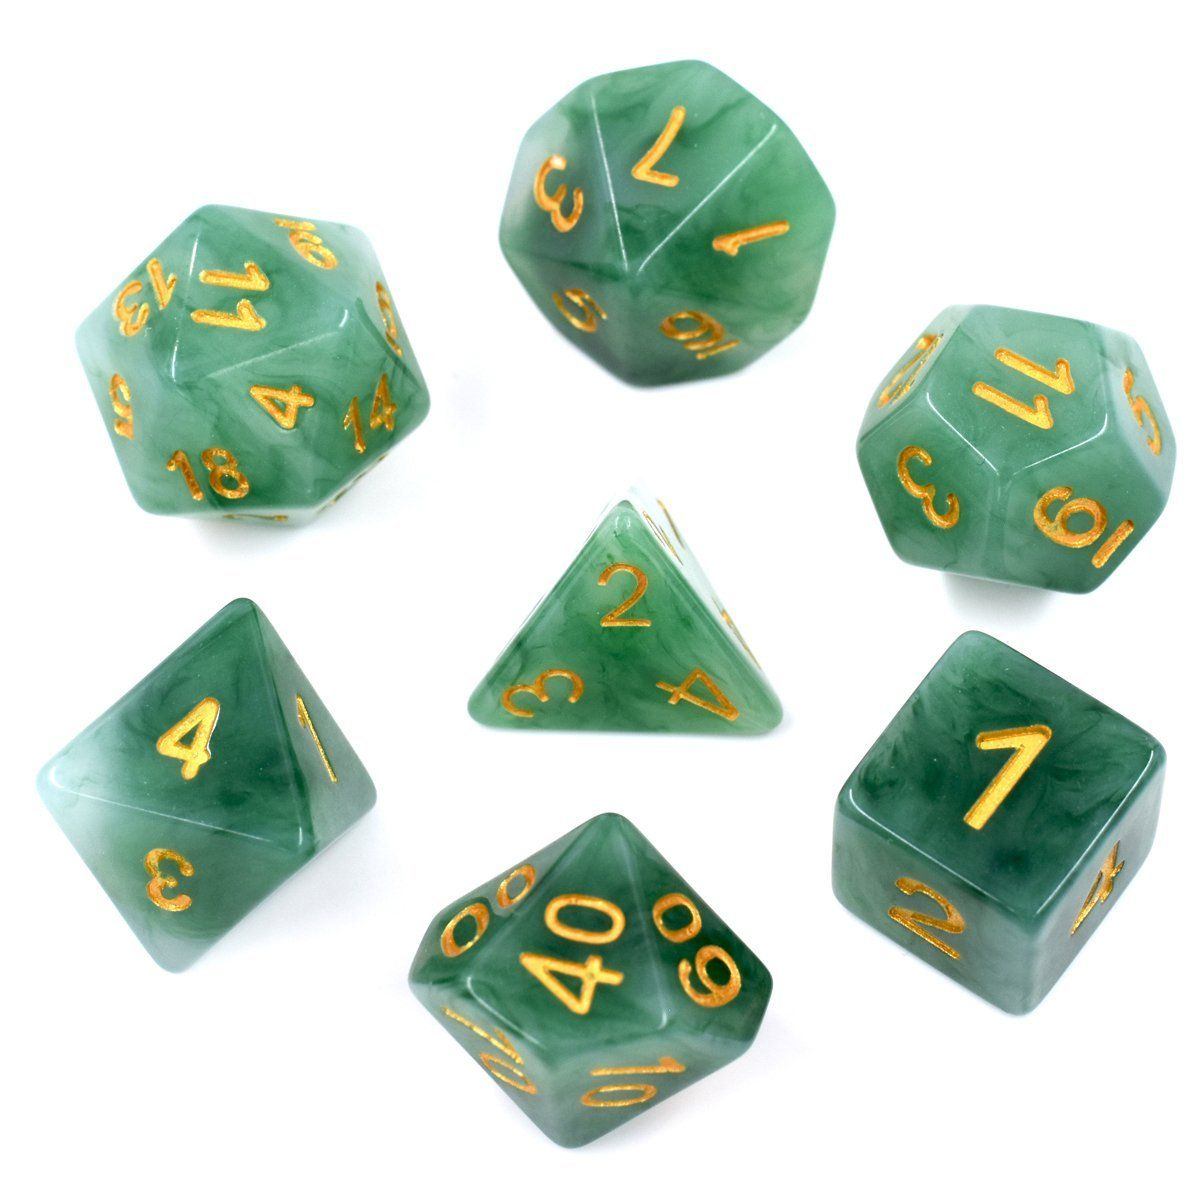 Role Play Game 7 Pieces Resin Dnd Dice Set Polyhedral Dice for DND RPG MTG